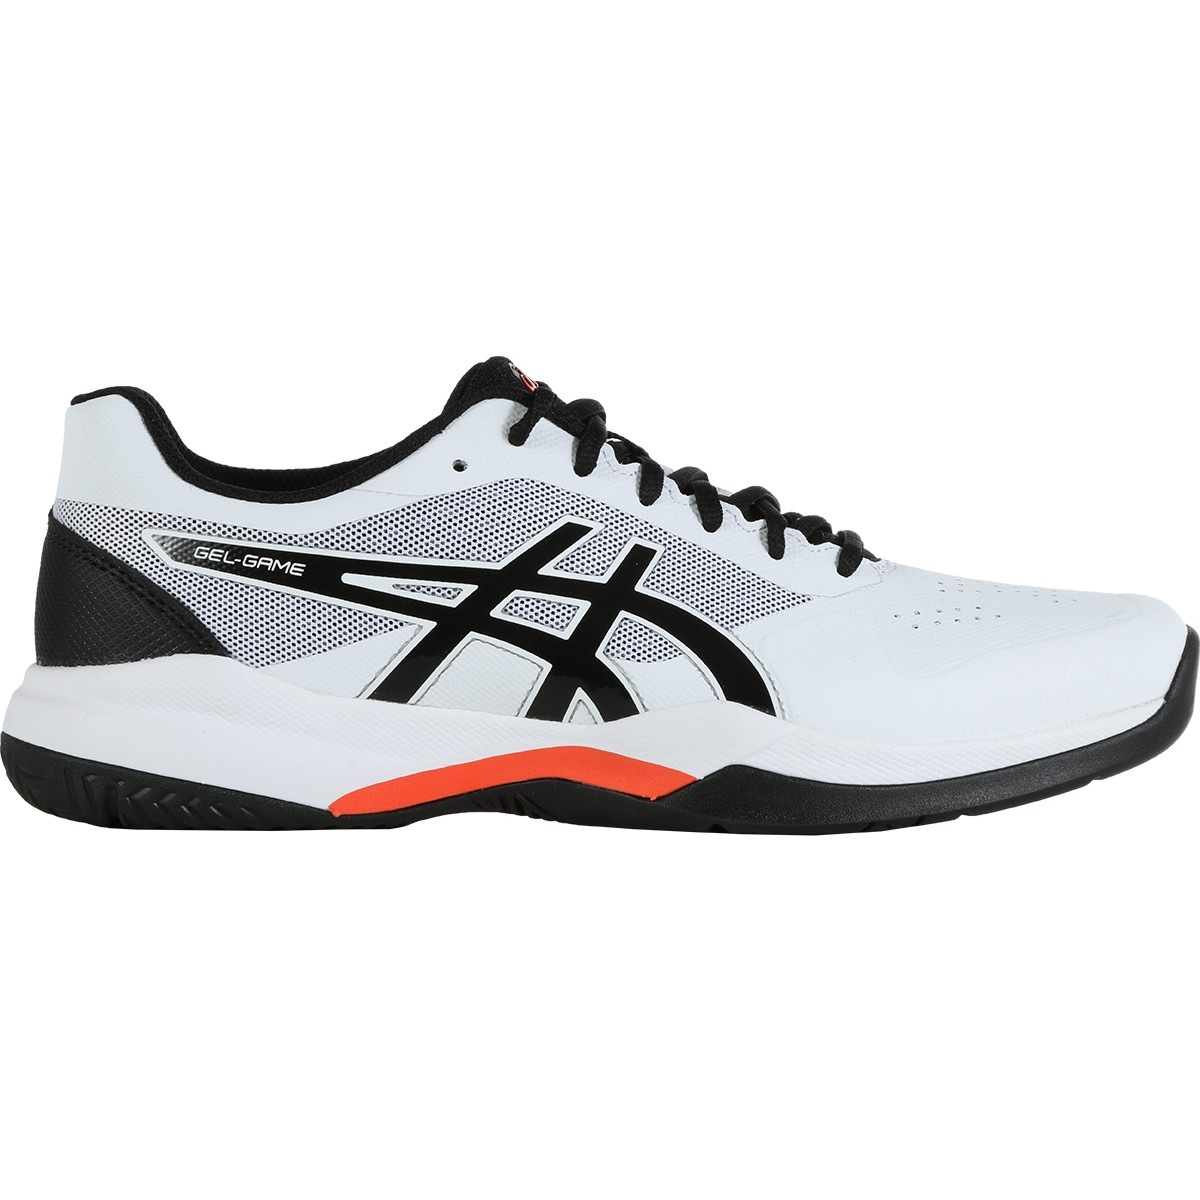 CHAUSSURES ASICS FEMME GEL GAME 7 TOUTES SURFACES ASICS